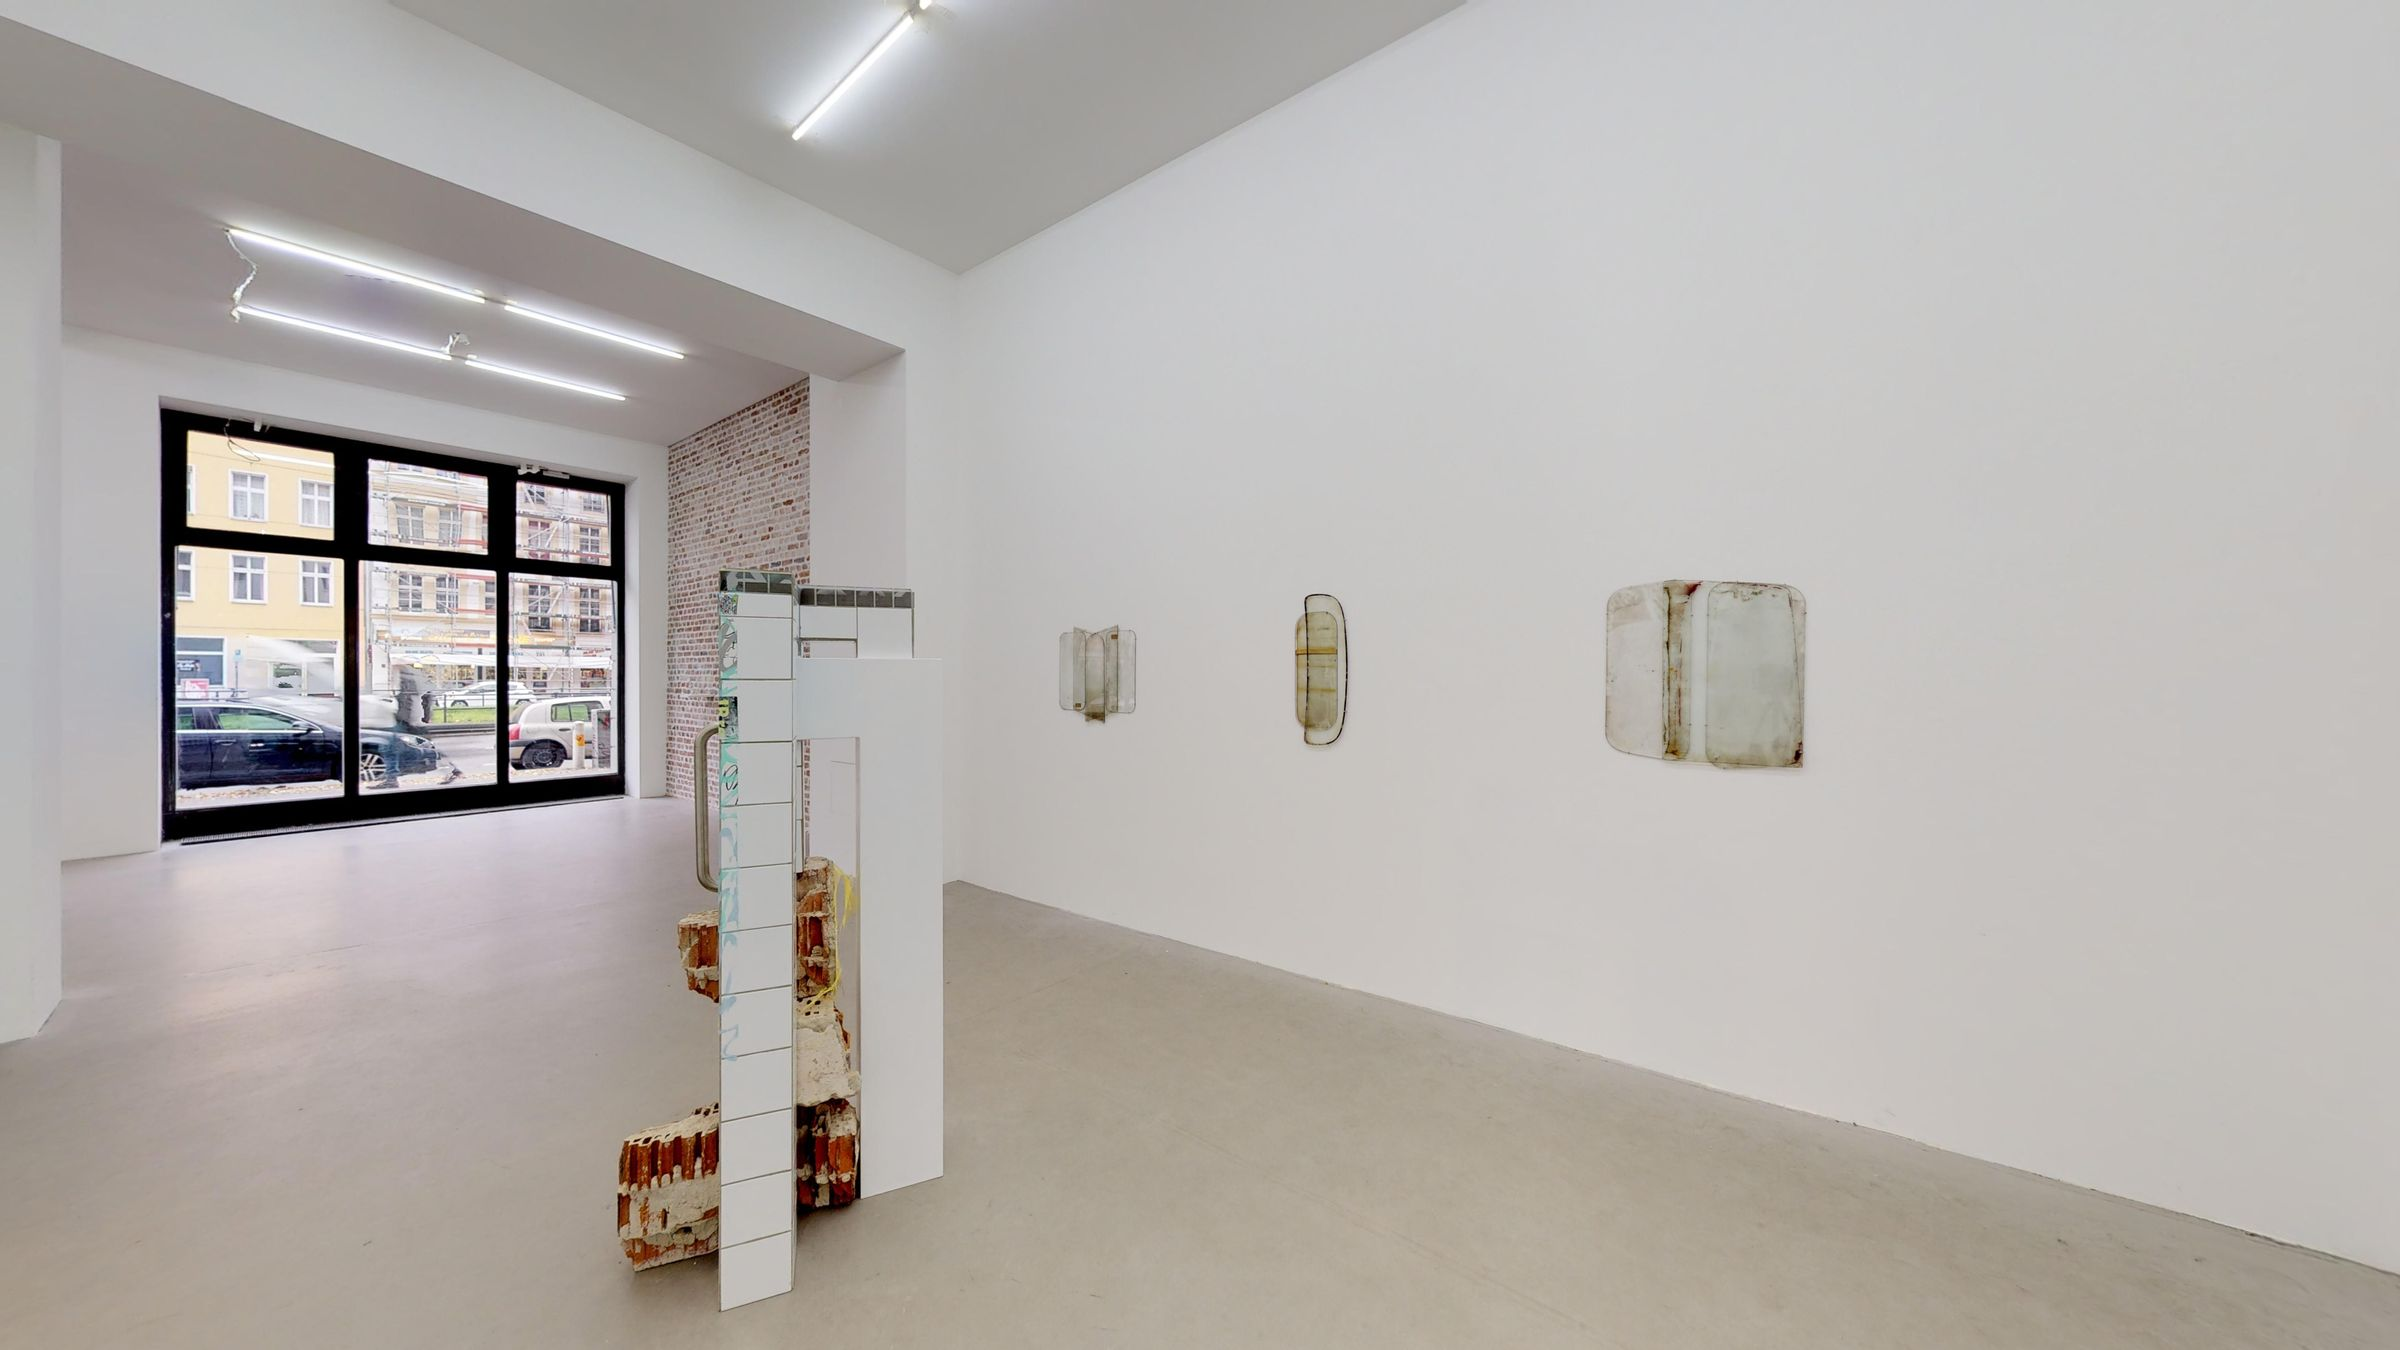 GLASS, RUBBER, STONE — NOT SO A WHITE CUBE #15